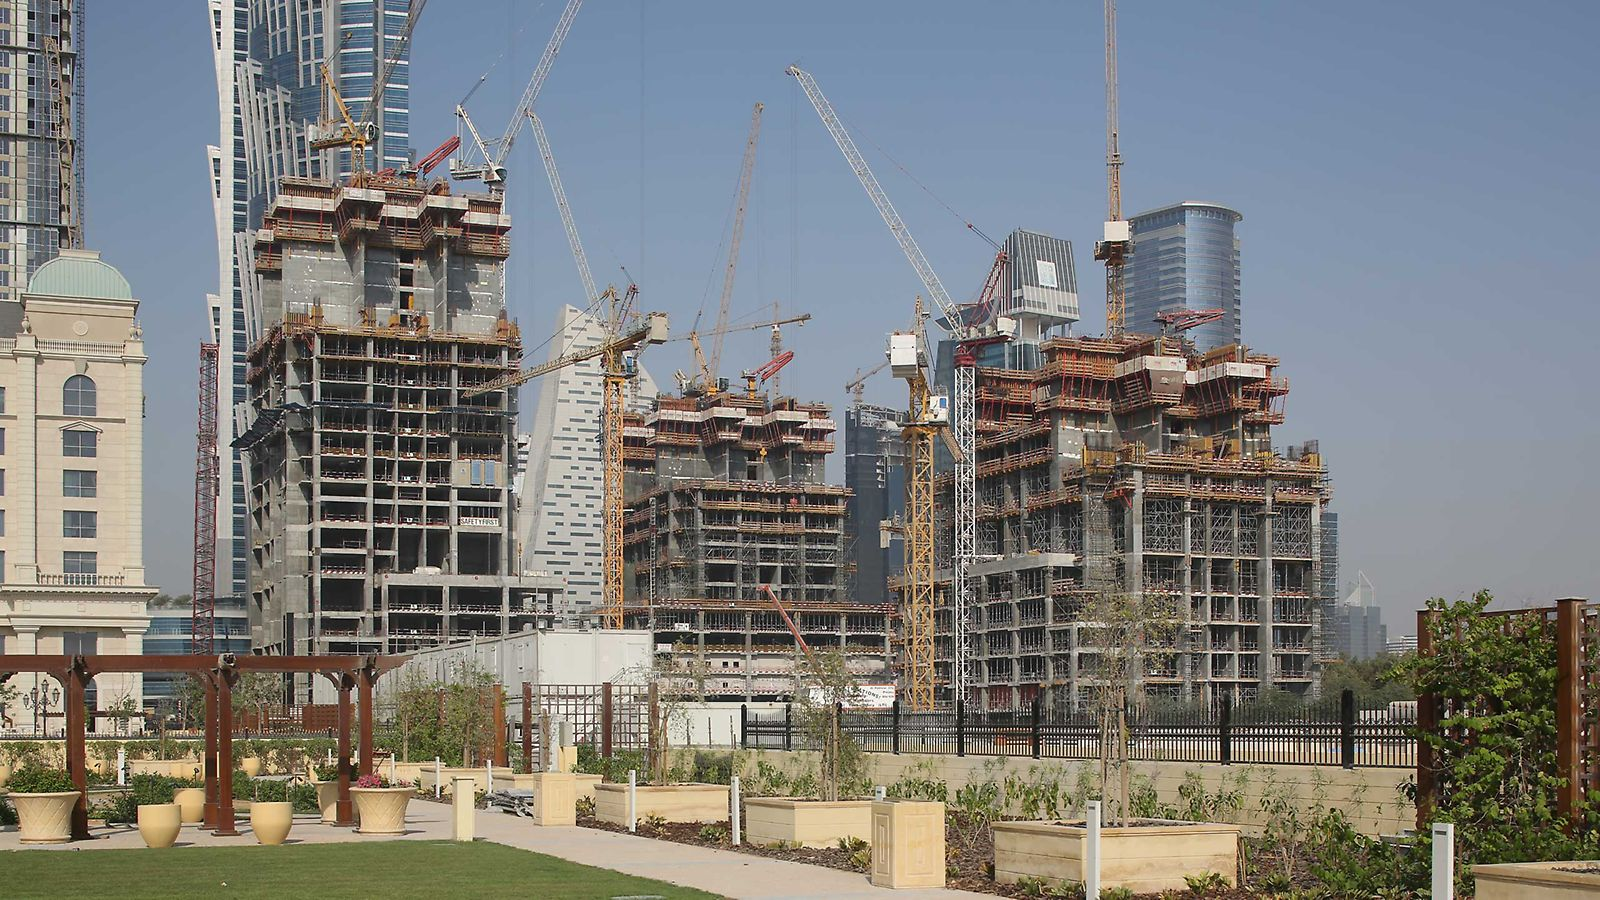 3 luxury highrise towers being built as part of the major Al Habtoor City Development along the highly anticipated Dubai Water Canal